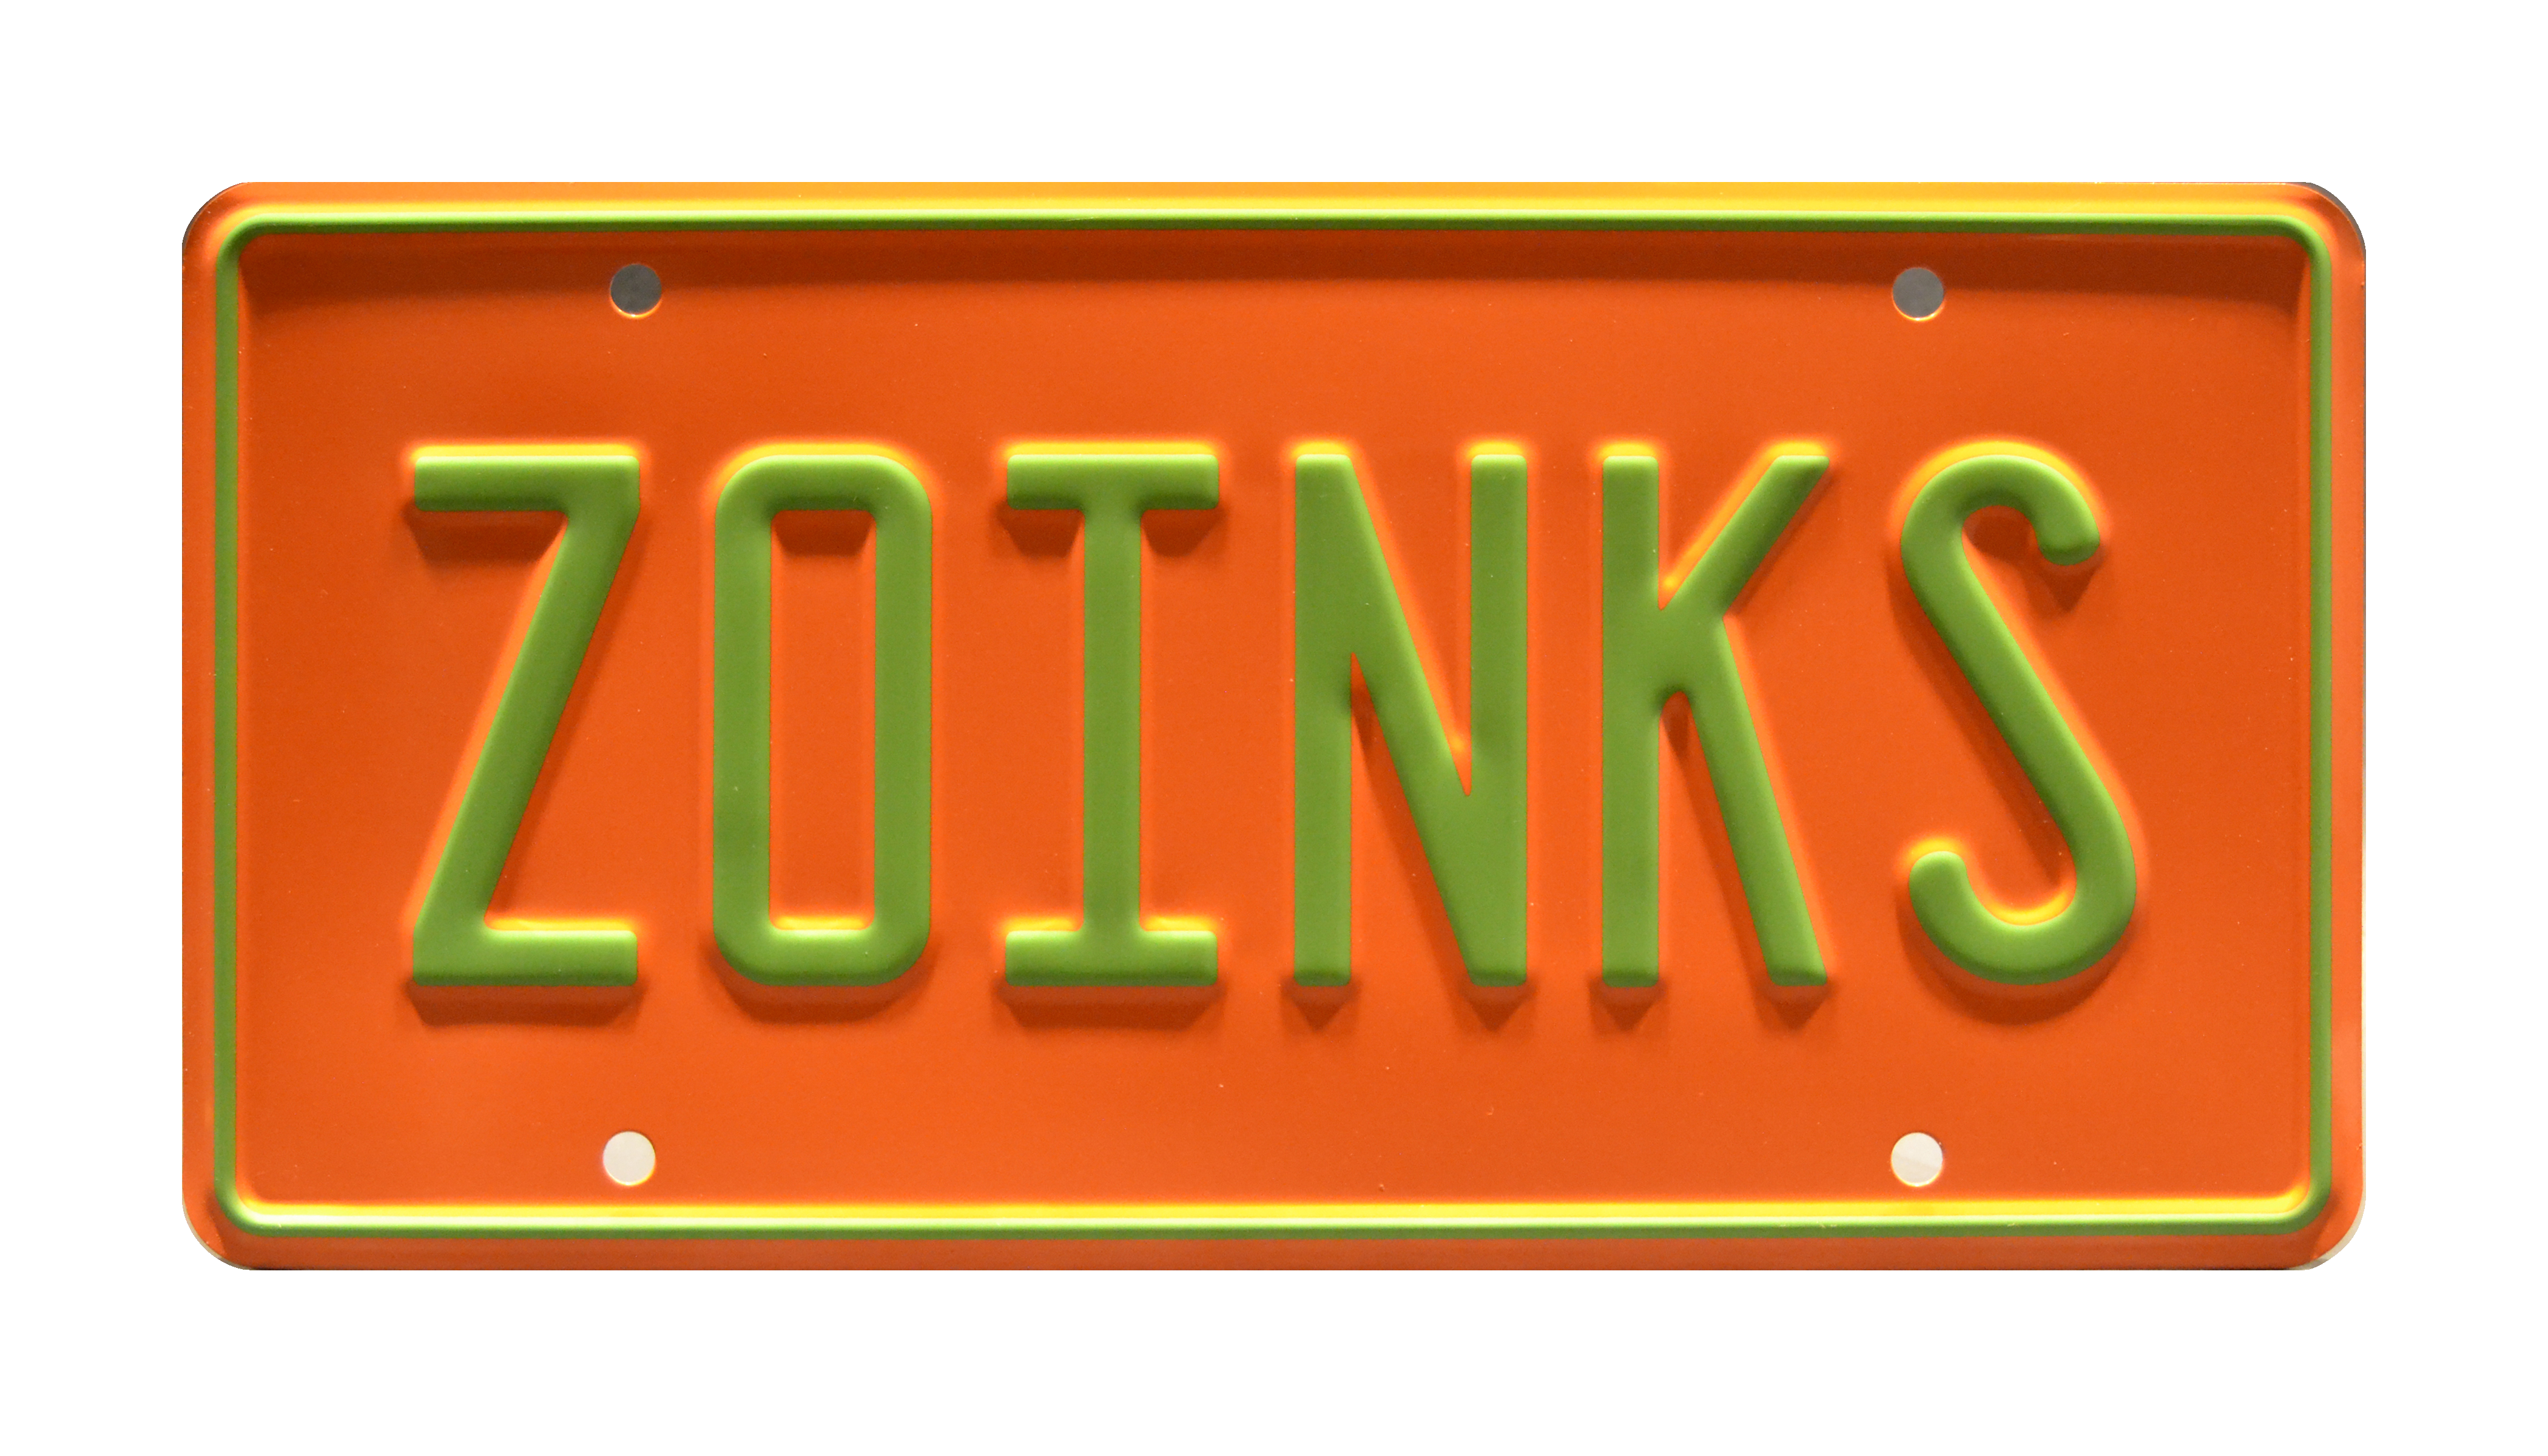 Scooby Doo The Mystery Machine Scooby Doo License Plate Metal Stamping